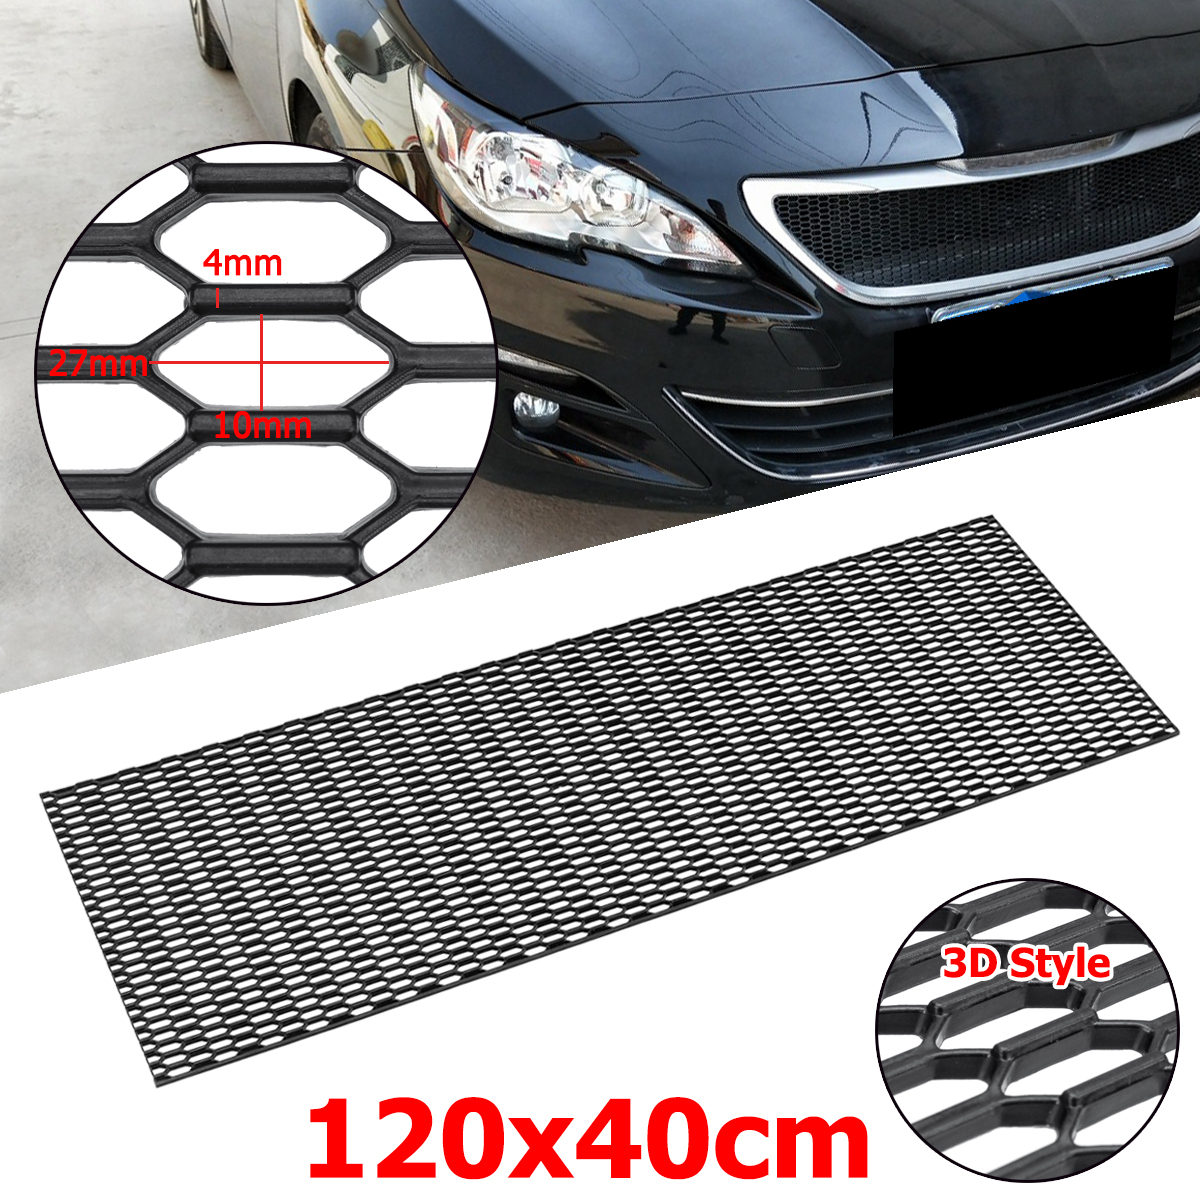 120cm Universal Racing Honeycomb Mesh Grill Bumper Vent Car Styling Air Intake Meshed Grille For Benz for Audi grille